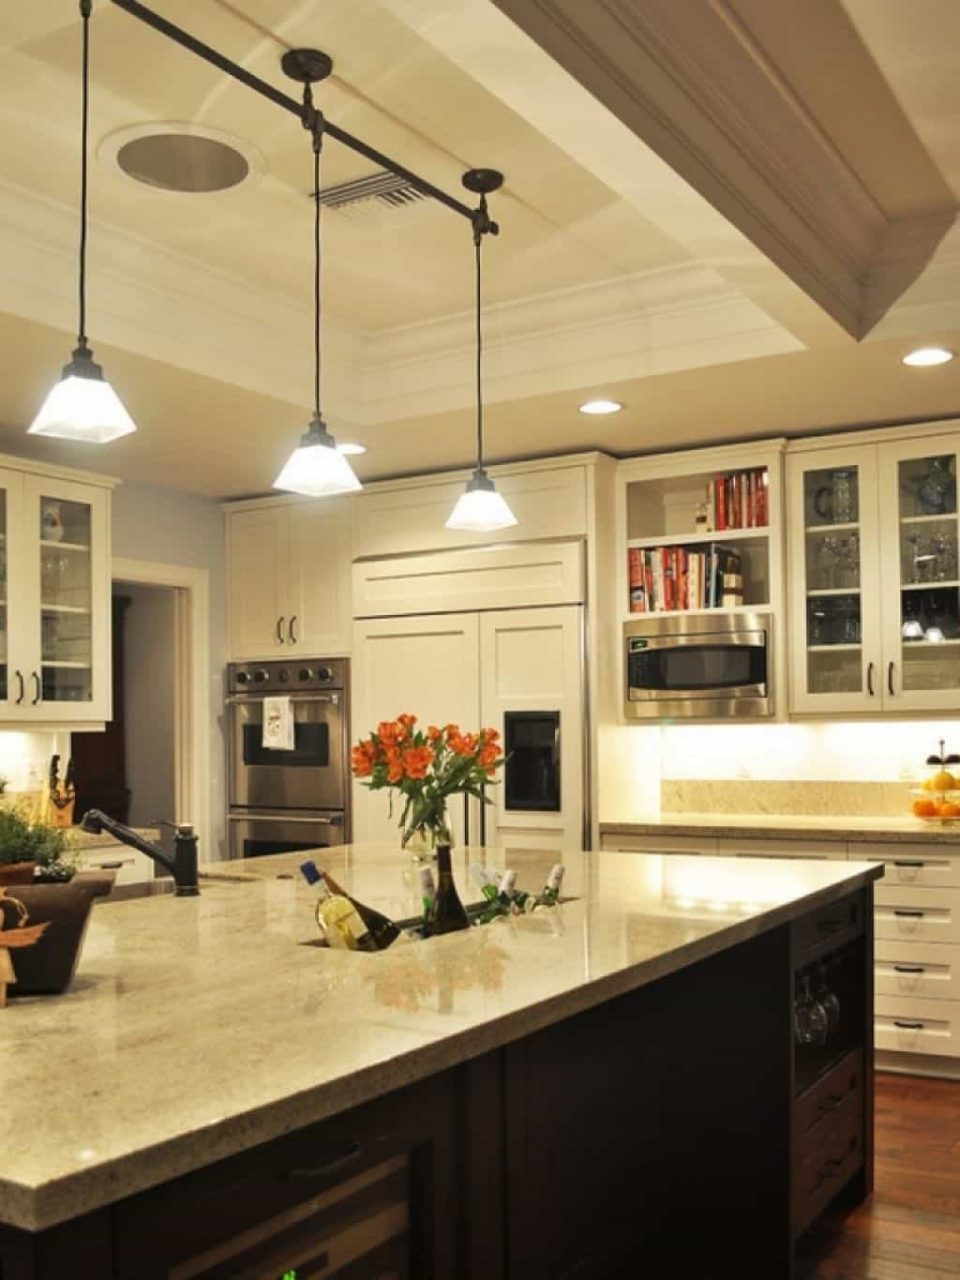 Kitchen With Wooden Cabinets And Pendant Track Lighting Stylish